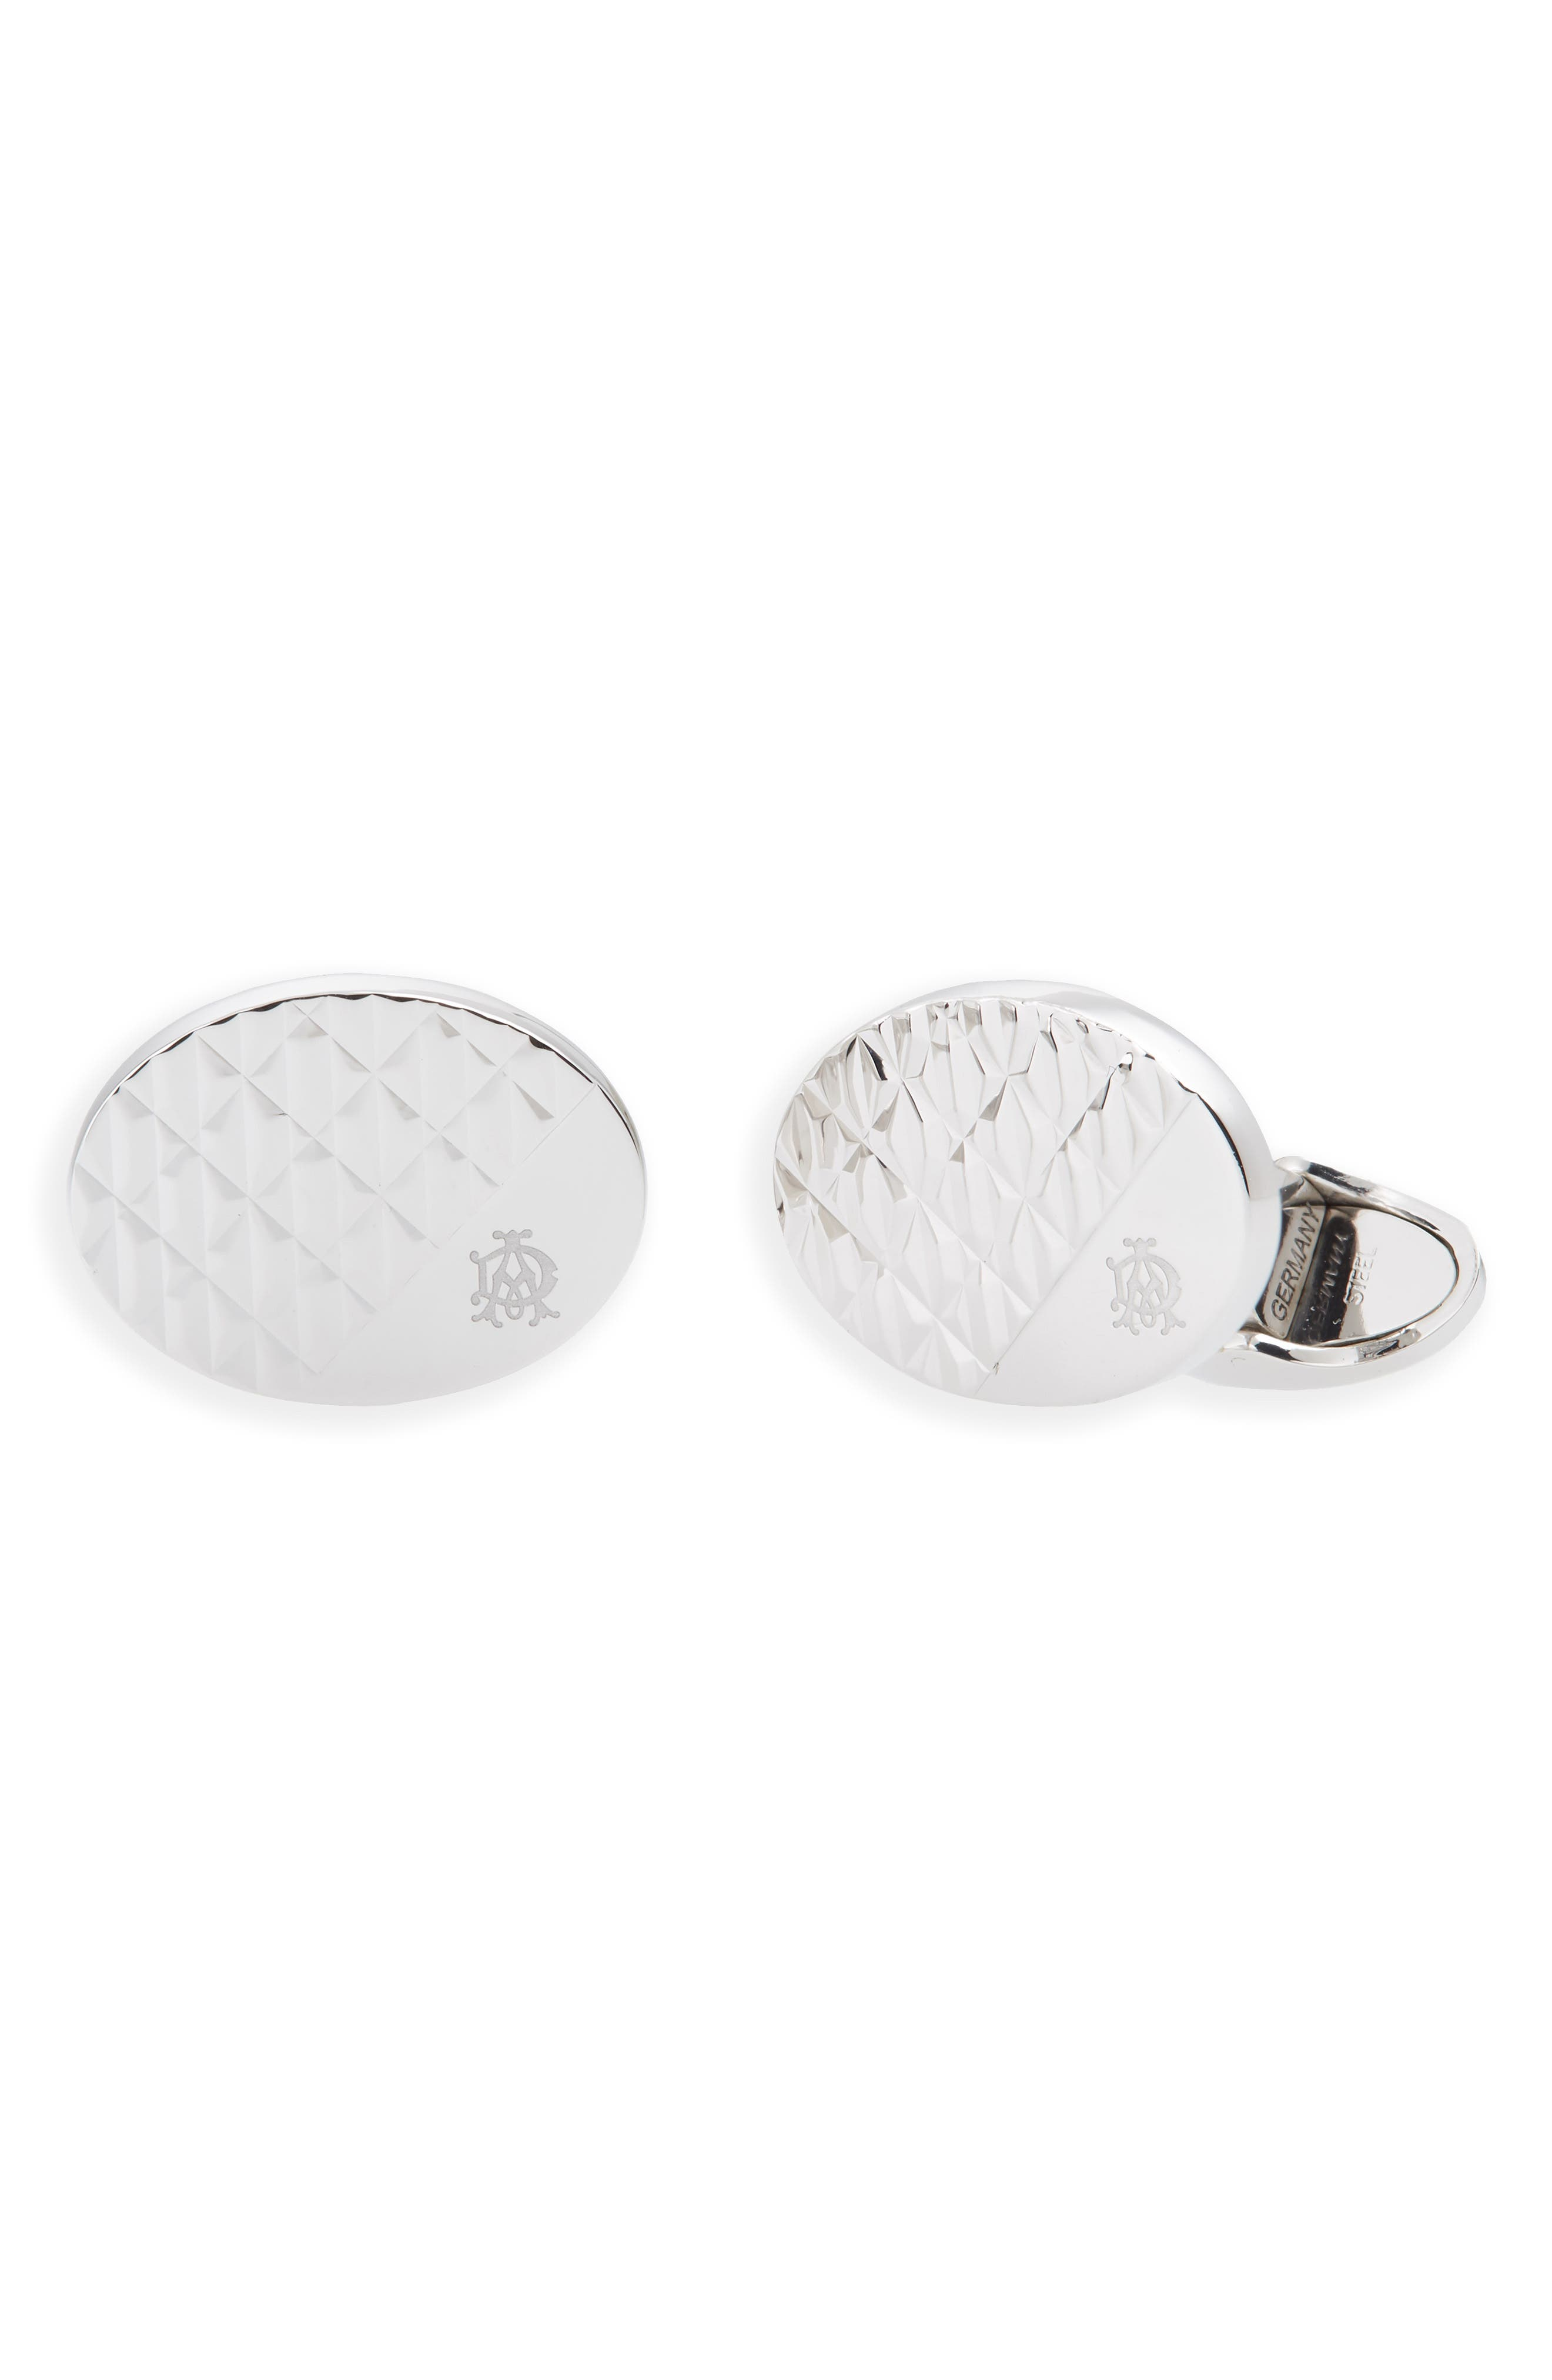 DUNHILL Modernist Cuff Links in Silver